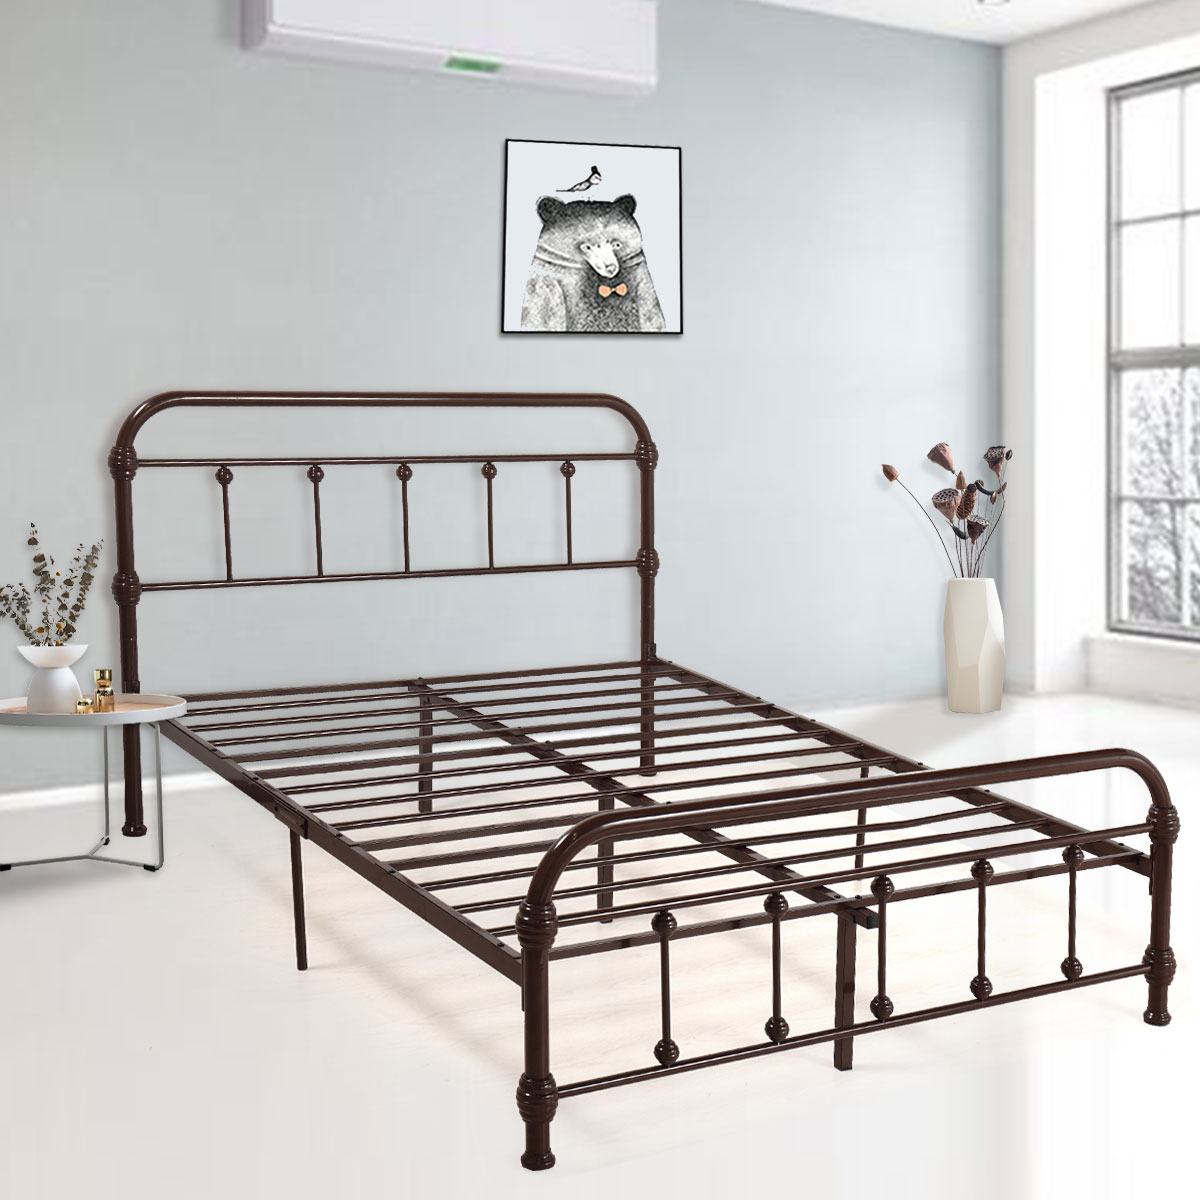 jaxpety metal bed frame platform metal support headboard footboard multiple sizes and colors